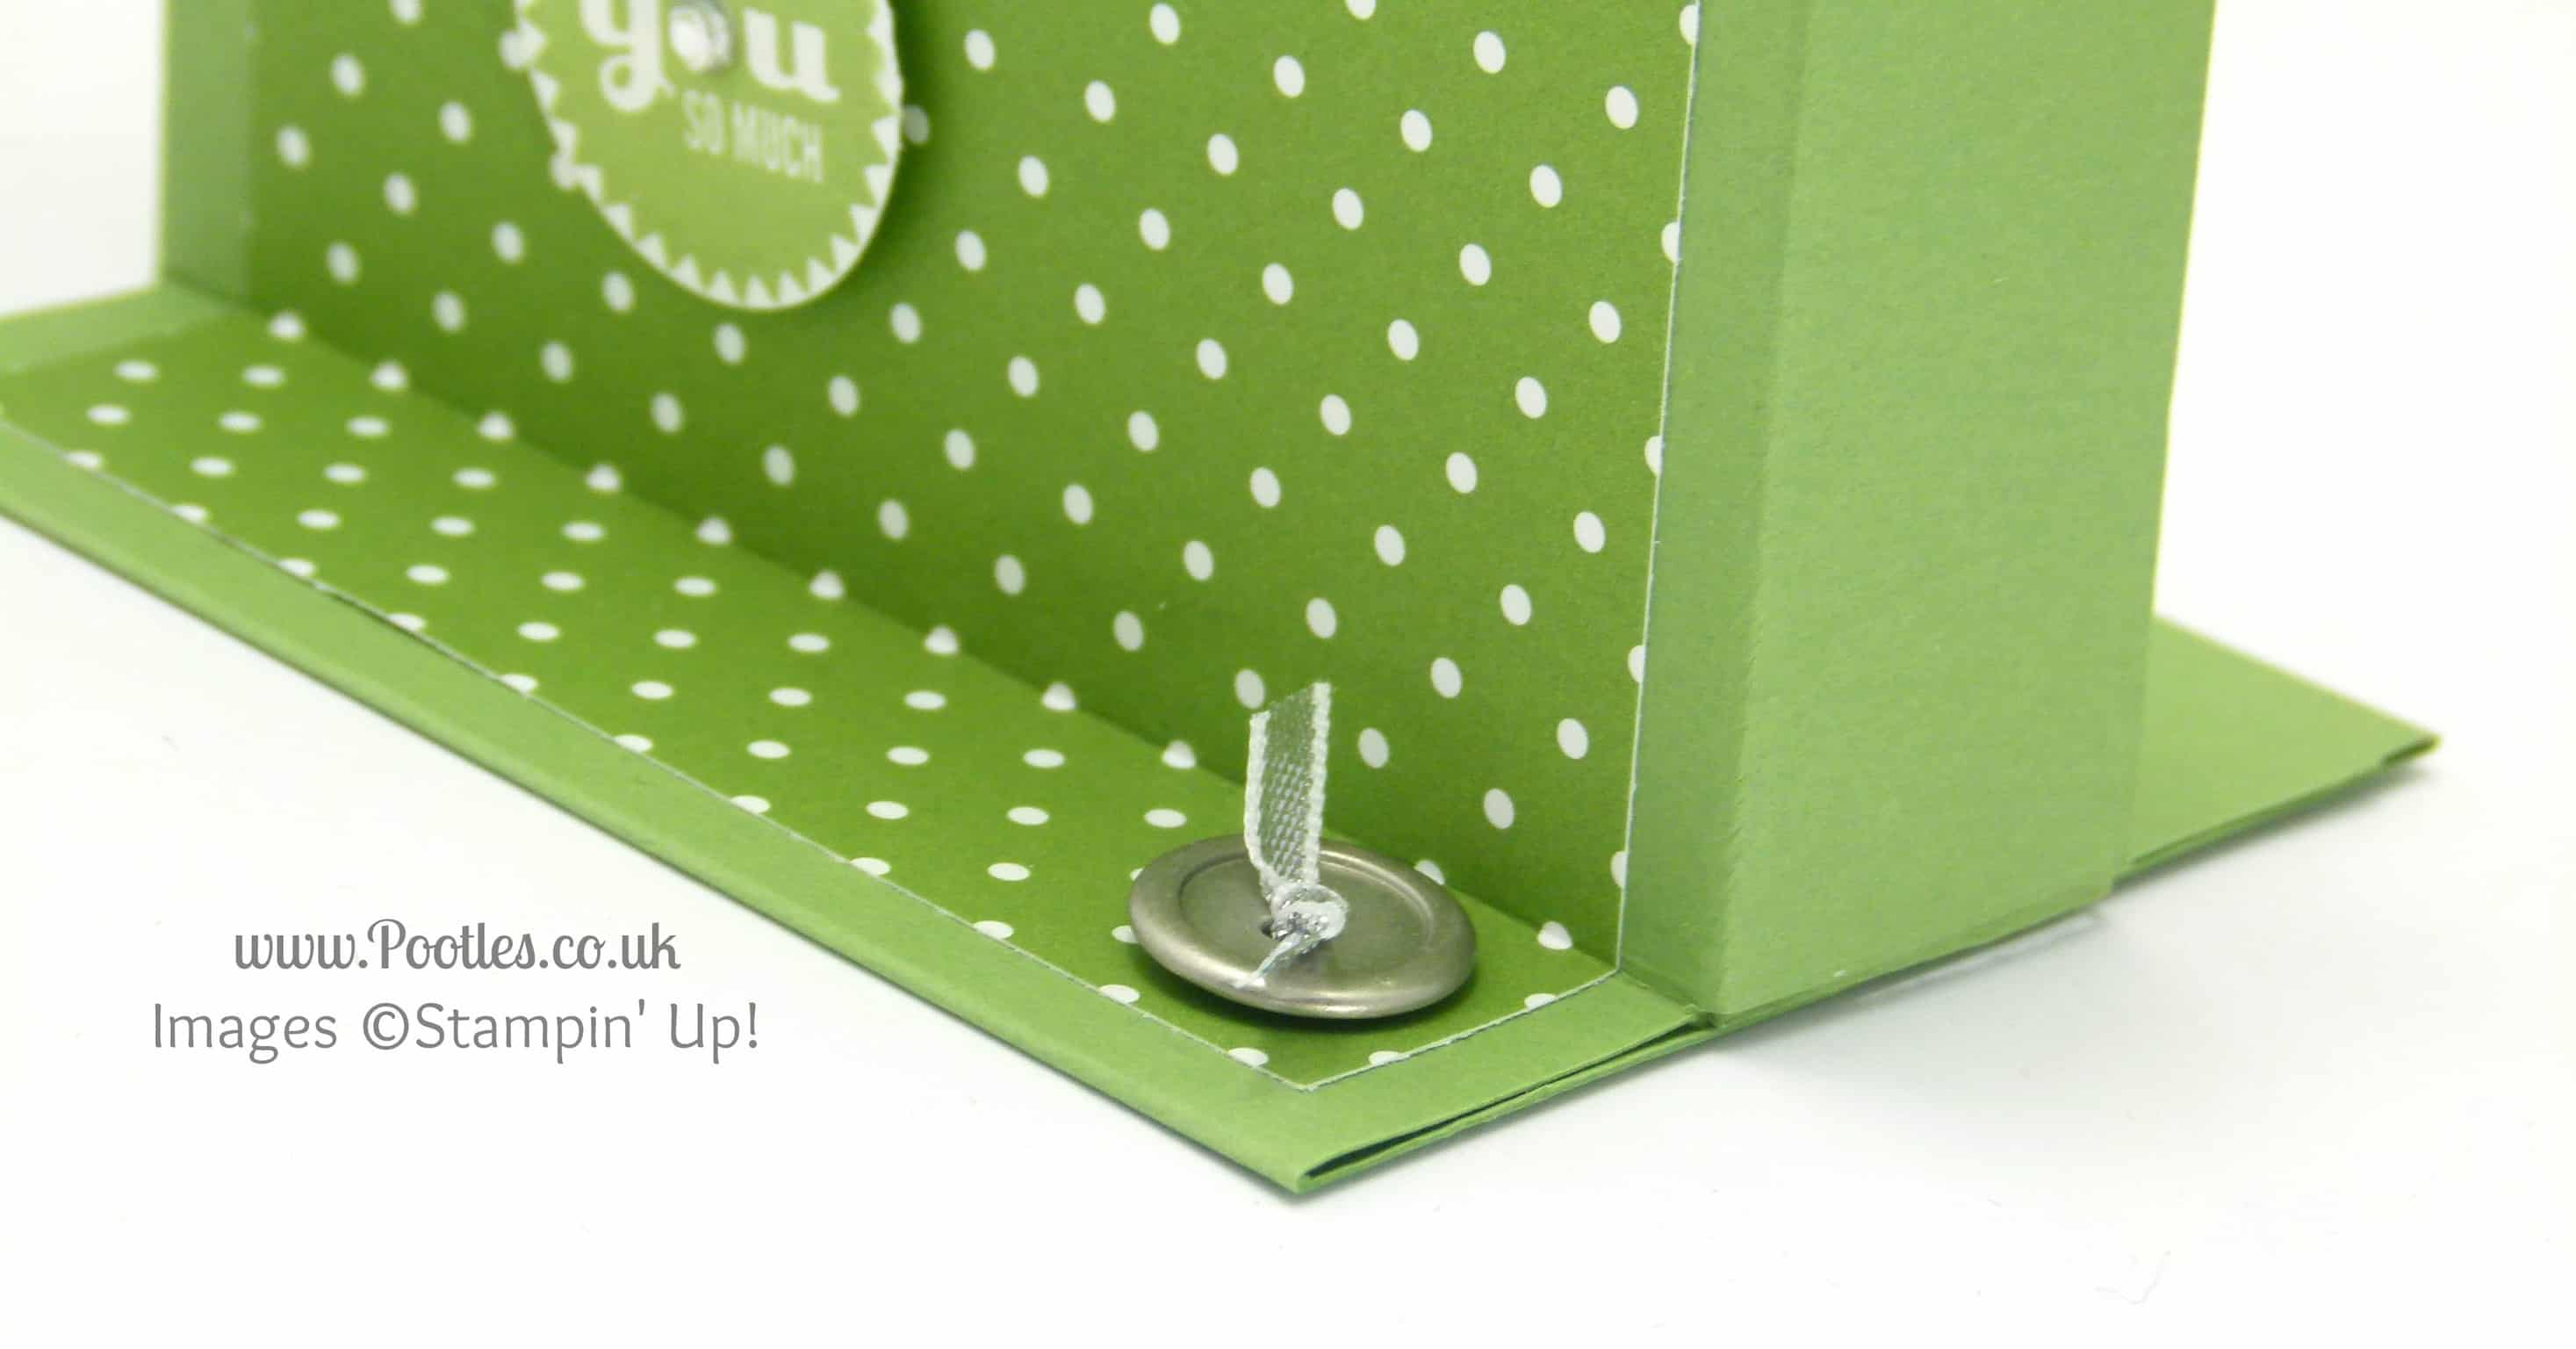 Stampin' Up! UK Independent Demonstrator Pootles - Freestanding Treat Bag Holder Tutorial button detail